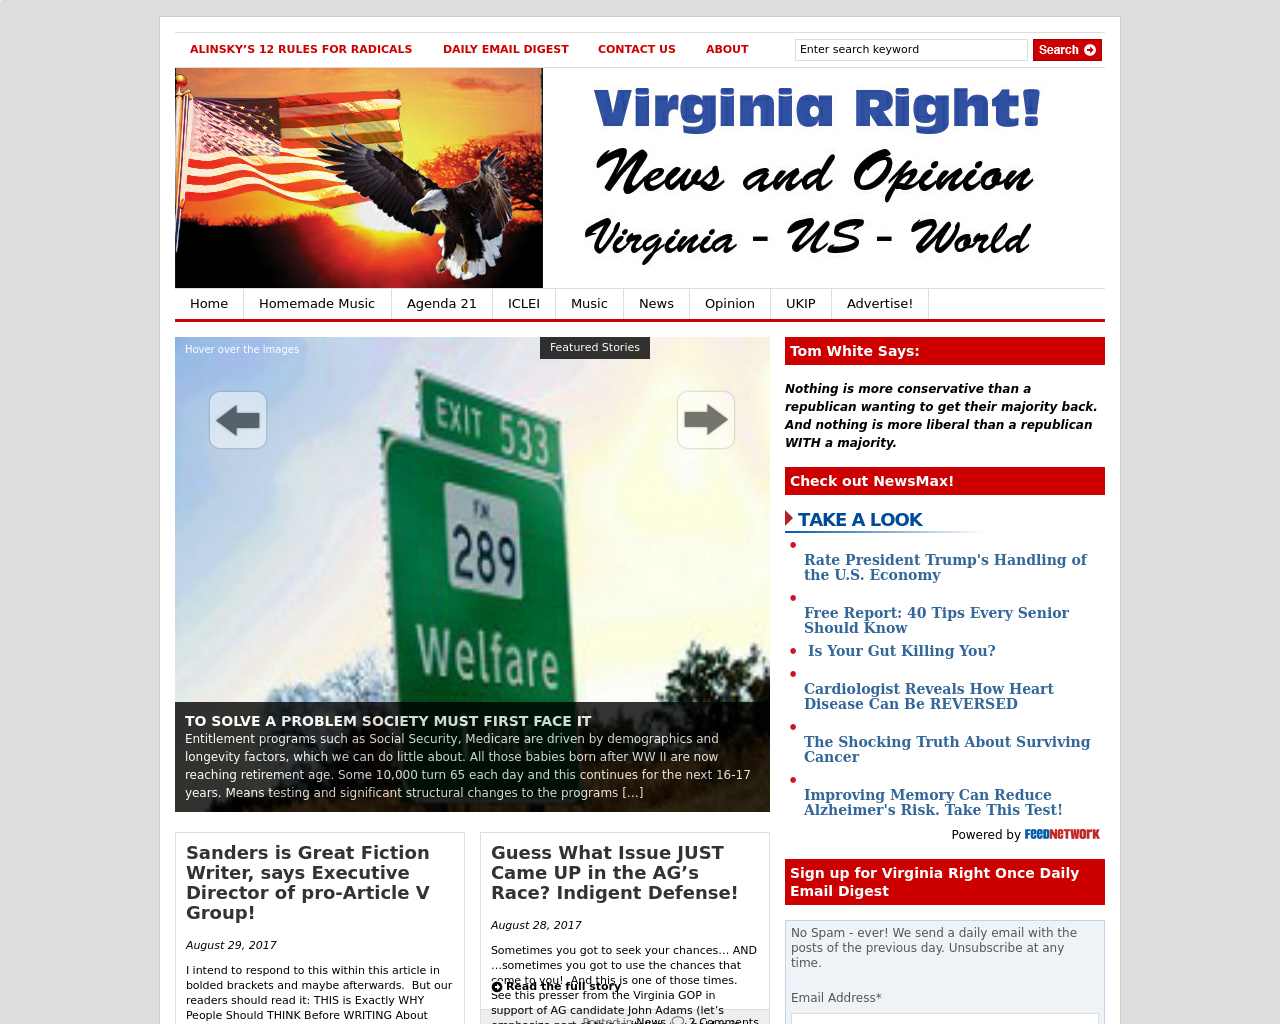 Virginia-Right-Advertising-Reviews-Pricing